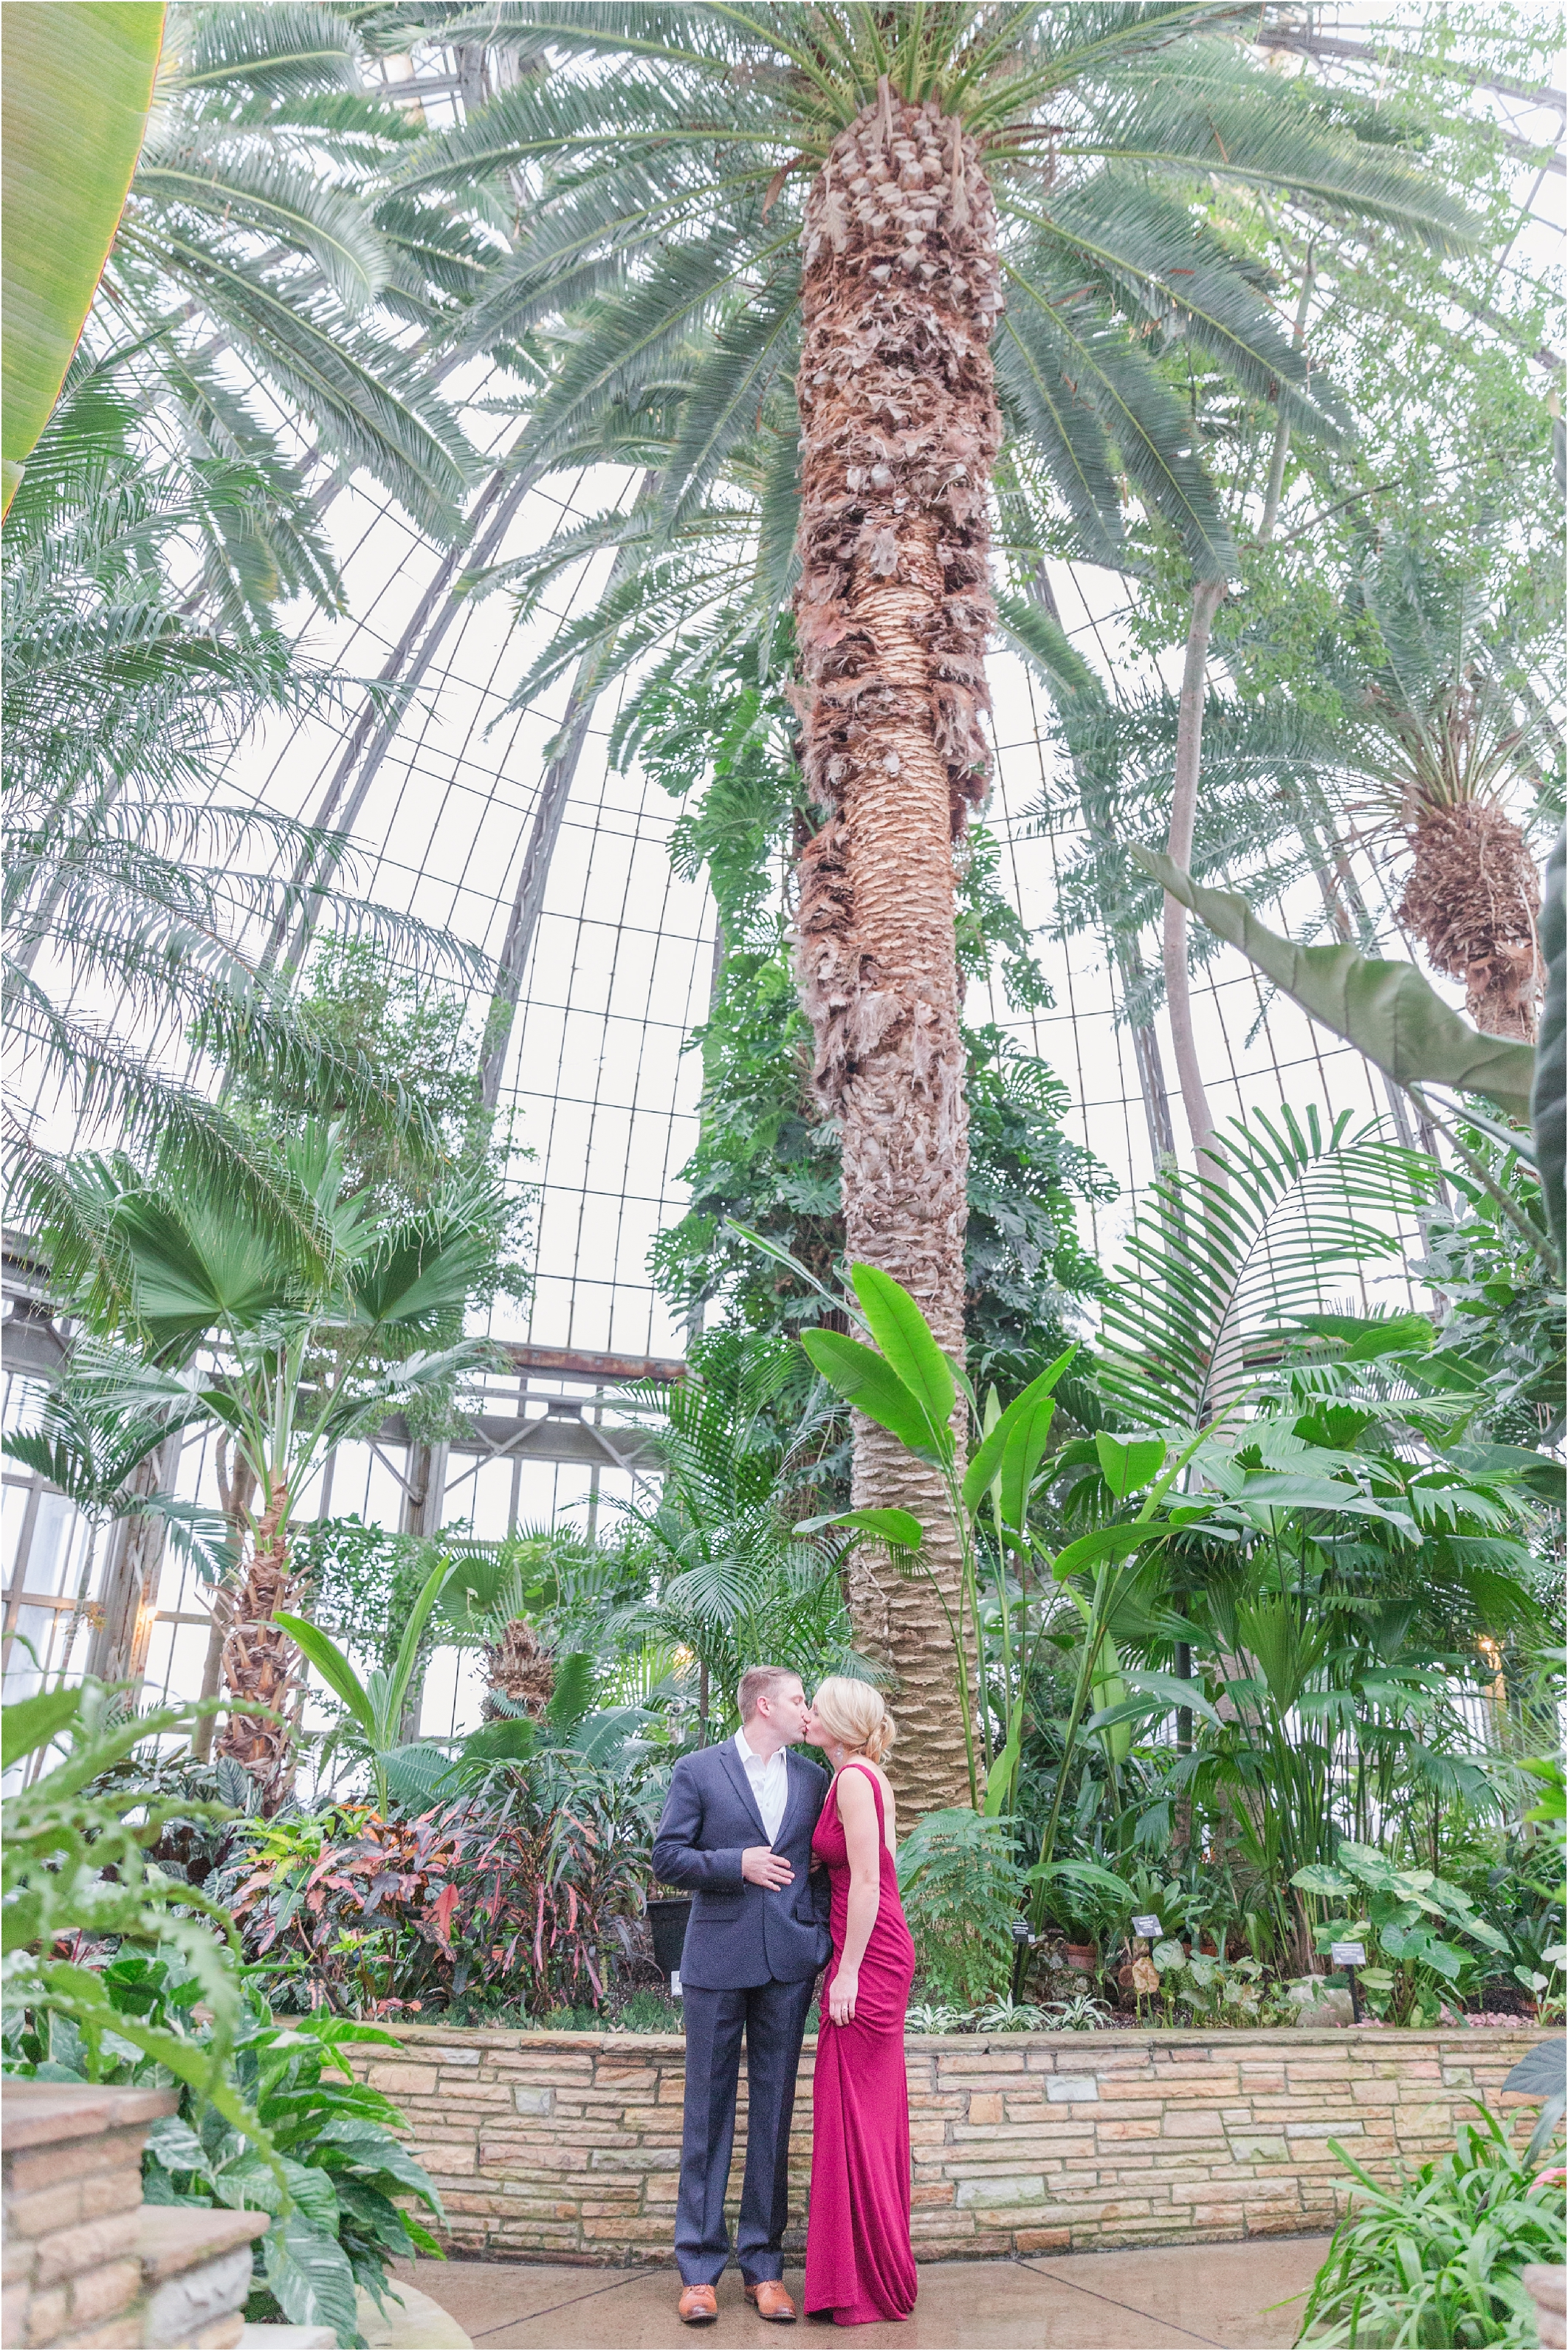 elegant-classic-belle-isle-conservatory-engagement-photos-in-detroit-mi-by-courtney-carolyn-photography_0008.jpg